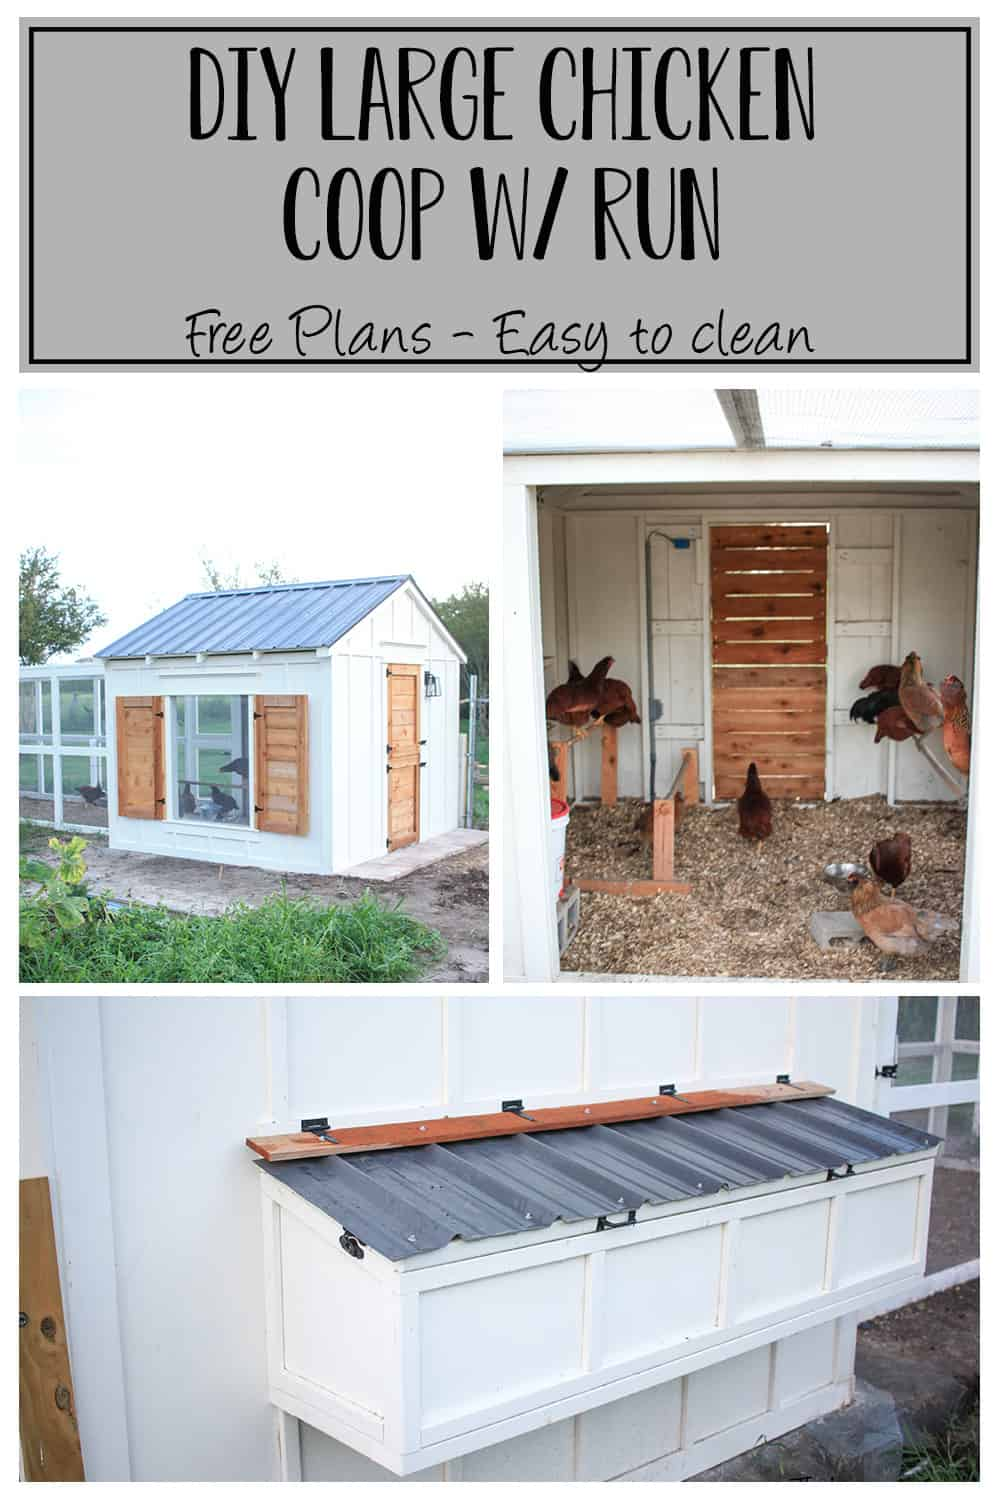 DIY PLans for Chicken Coop